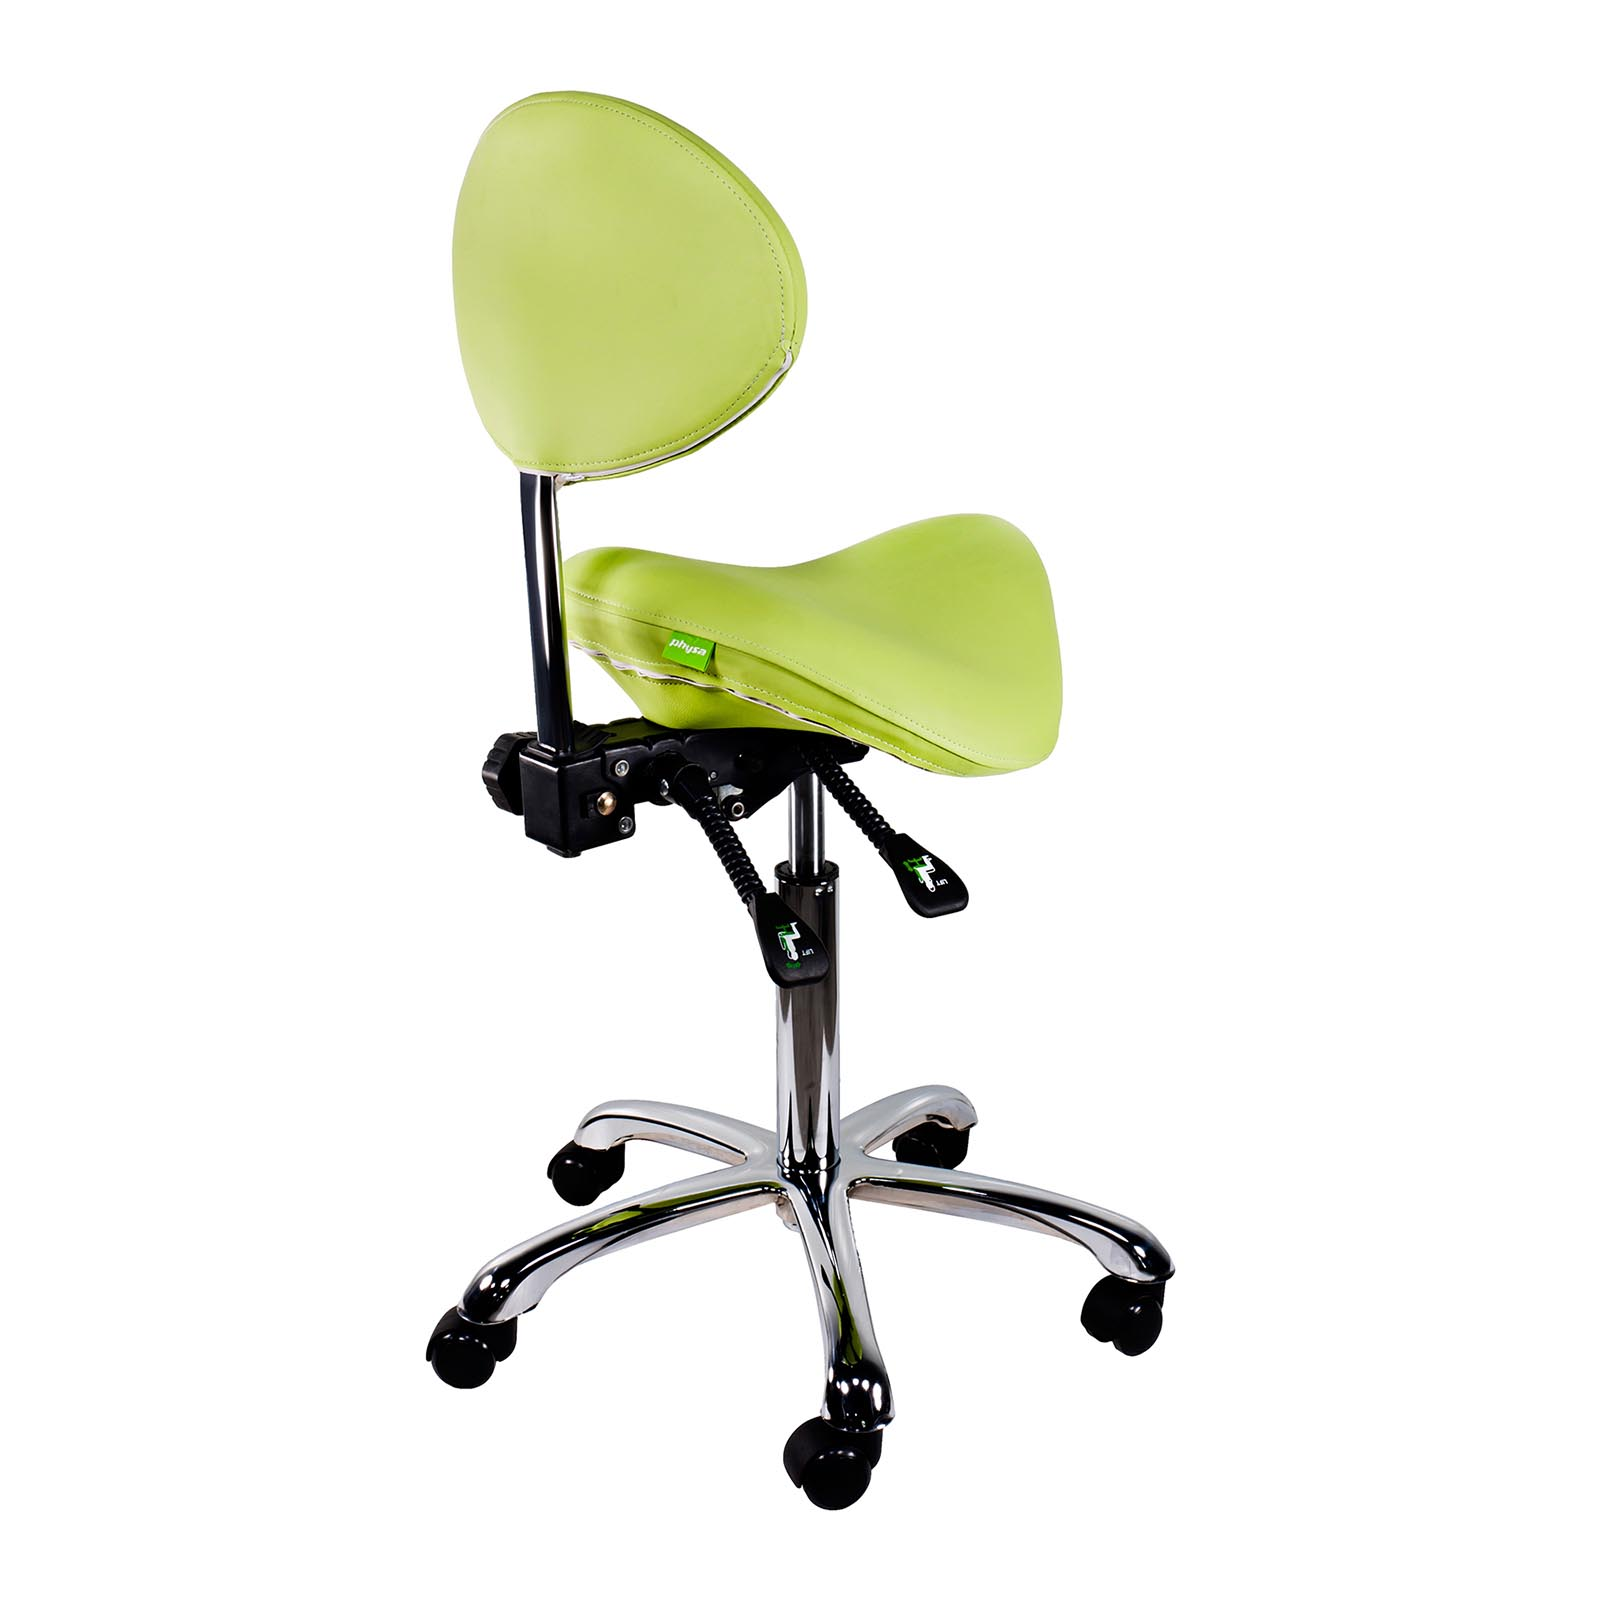 Salon Stool Saddle Chair With Backrest Adjustable Seat